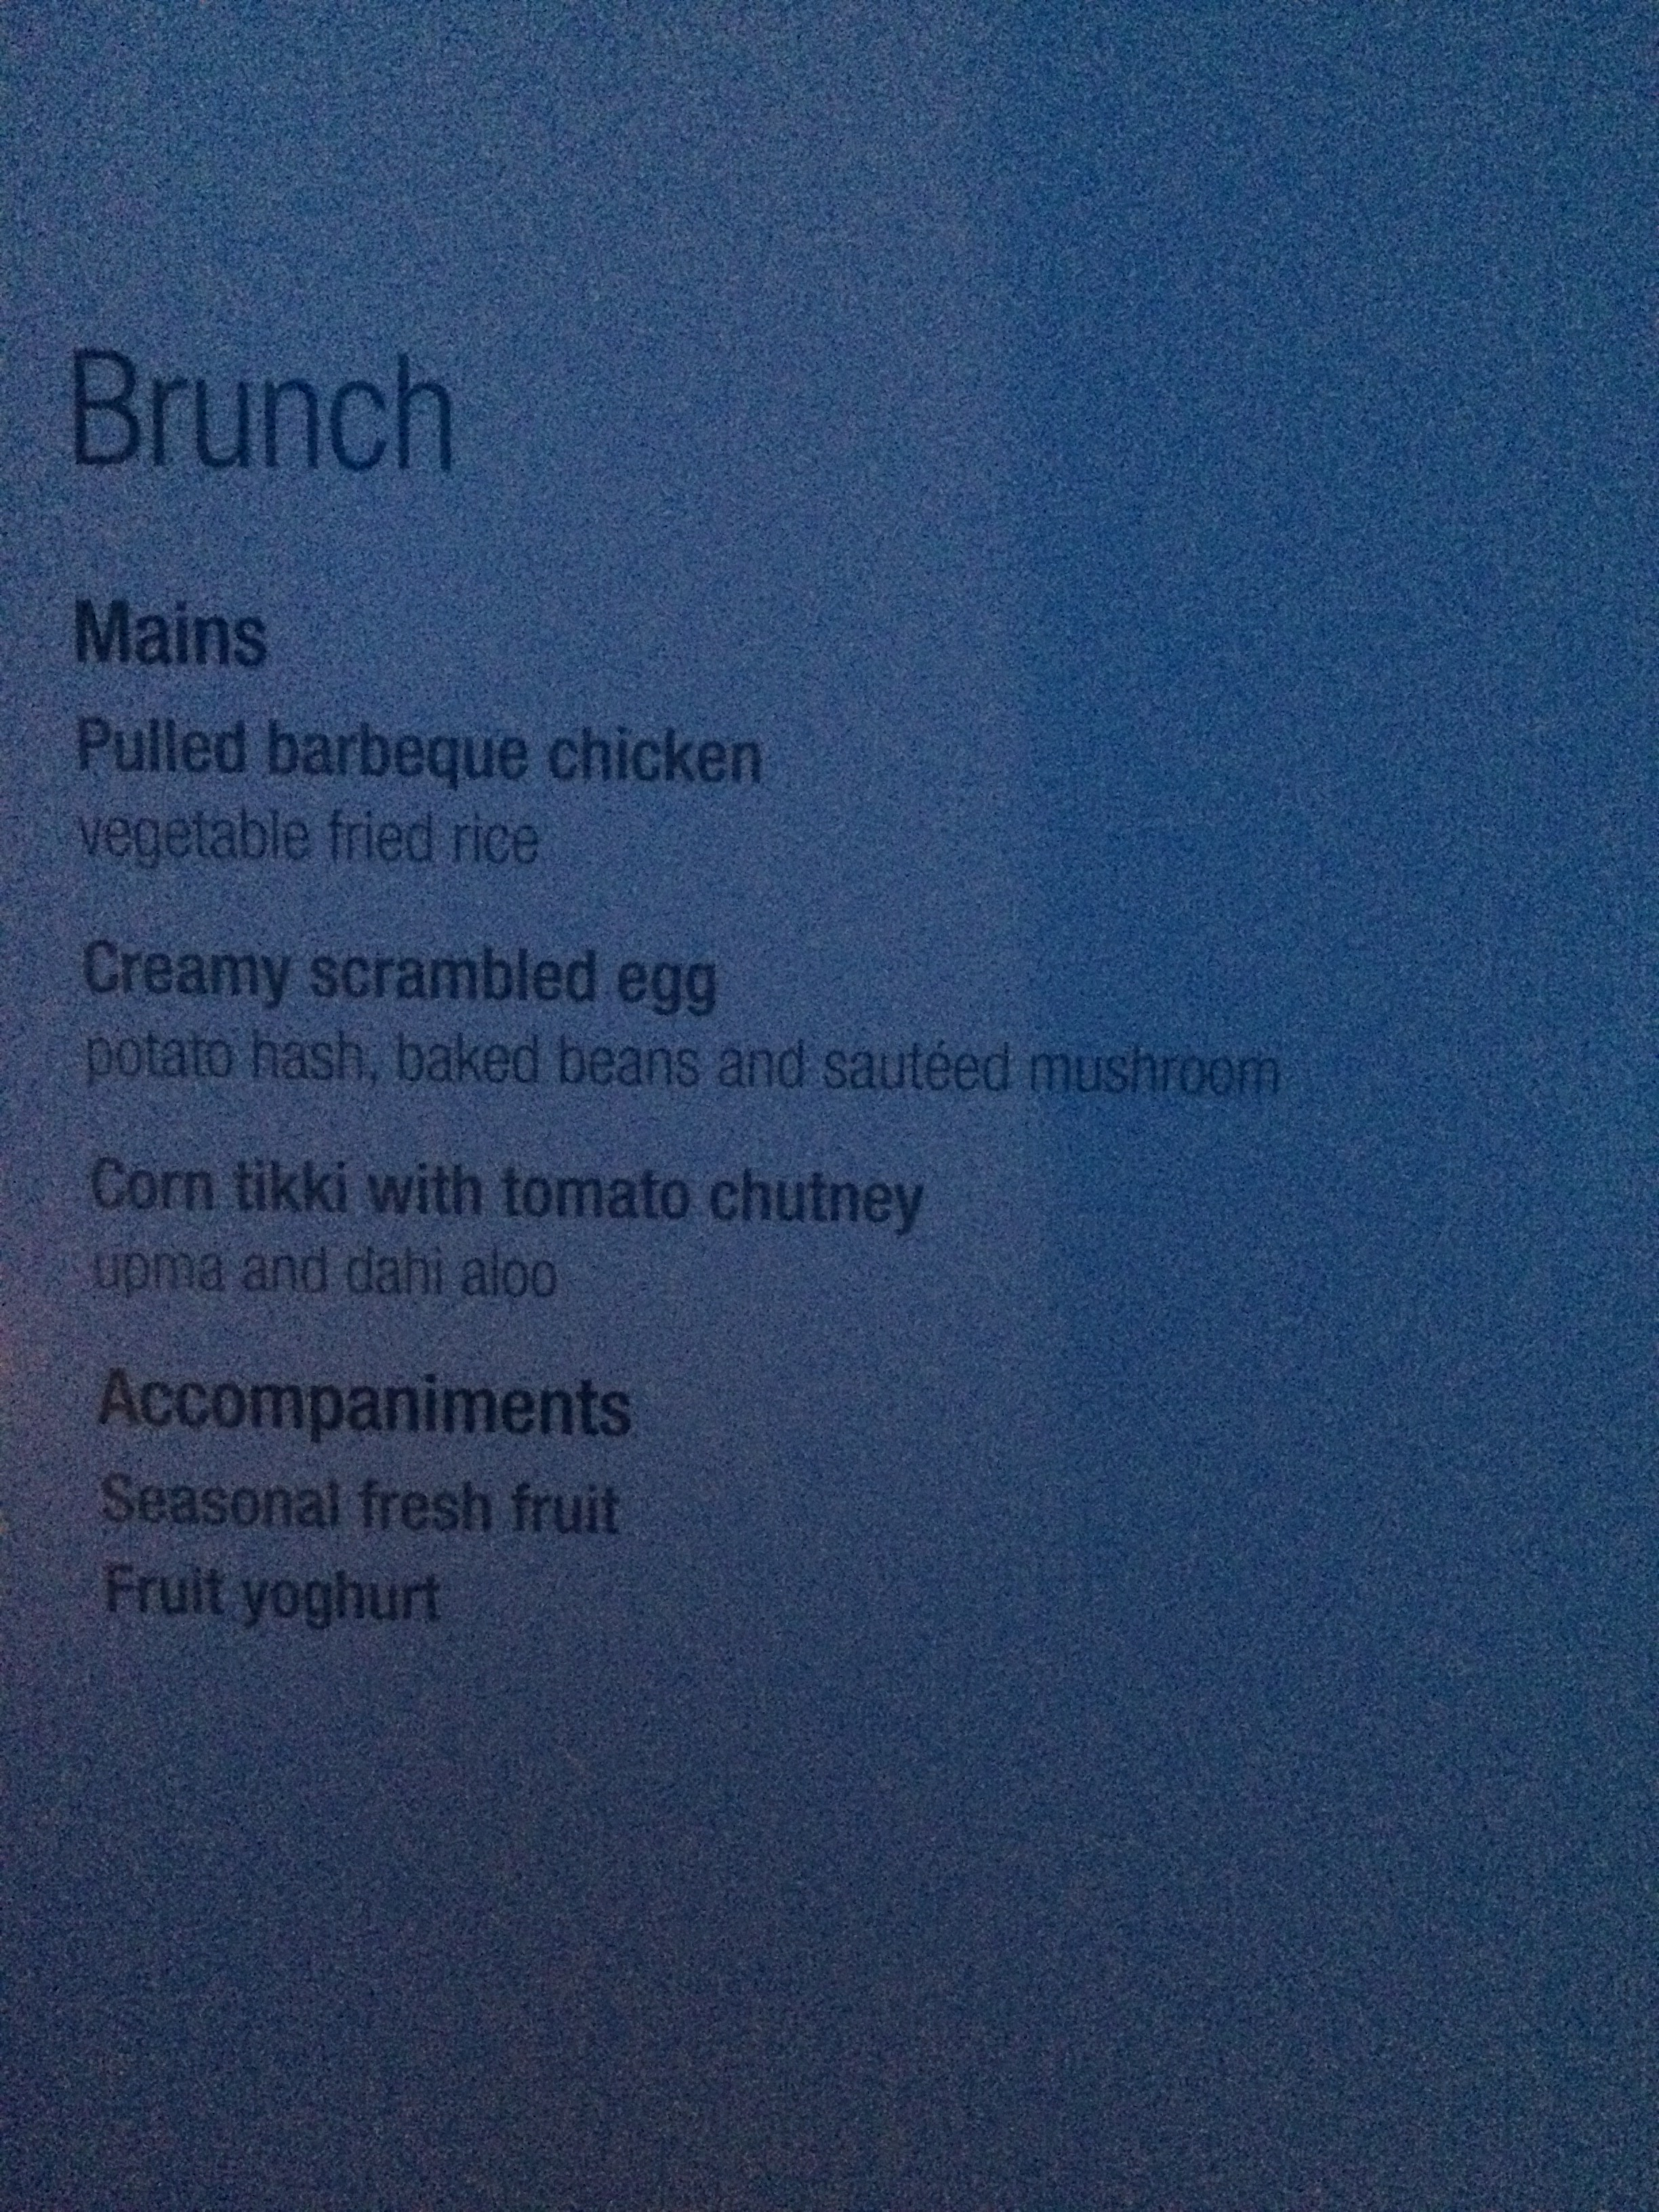 qatar airways menu 2.JPG